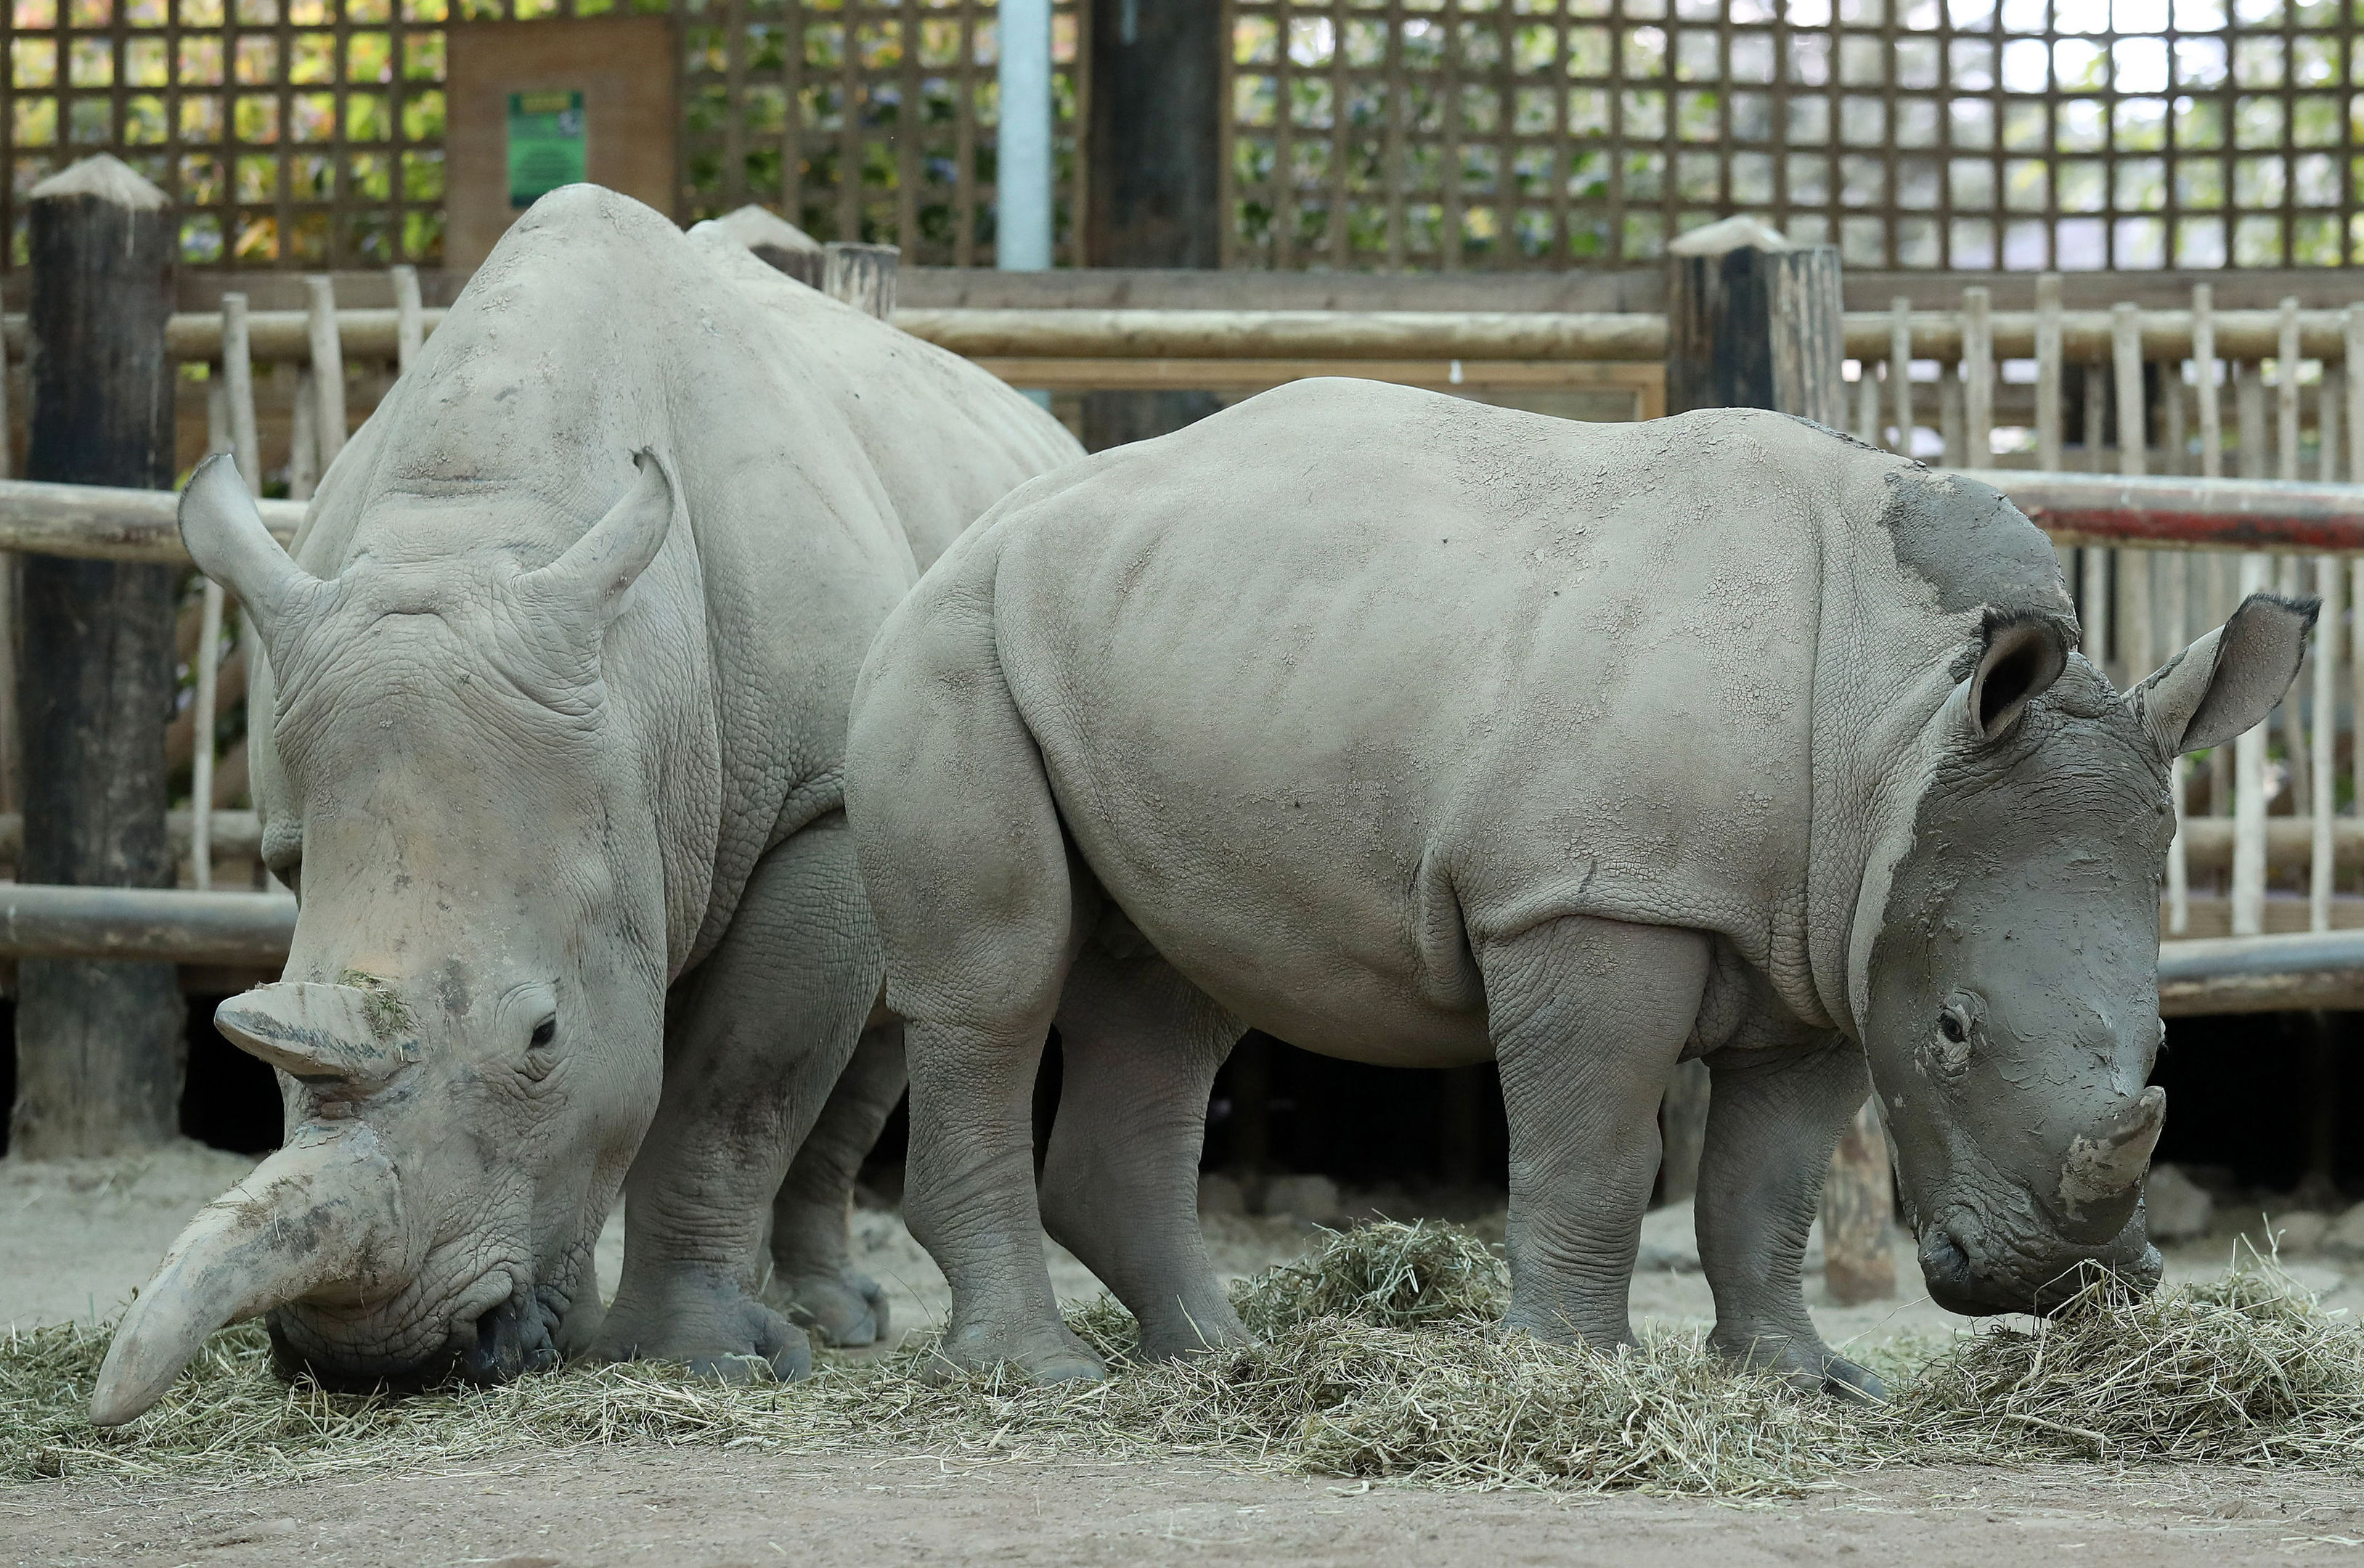 Bonnie, a baby White Rhino, enjoys a facial mudpack with her mum Dorothy in preparation for her first birthday party at Blair Drummond Safari Park. (Andrew Milligan/PA Wire)